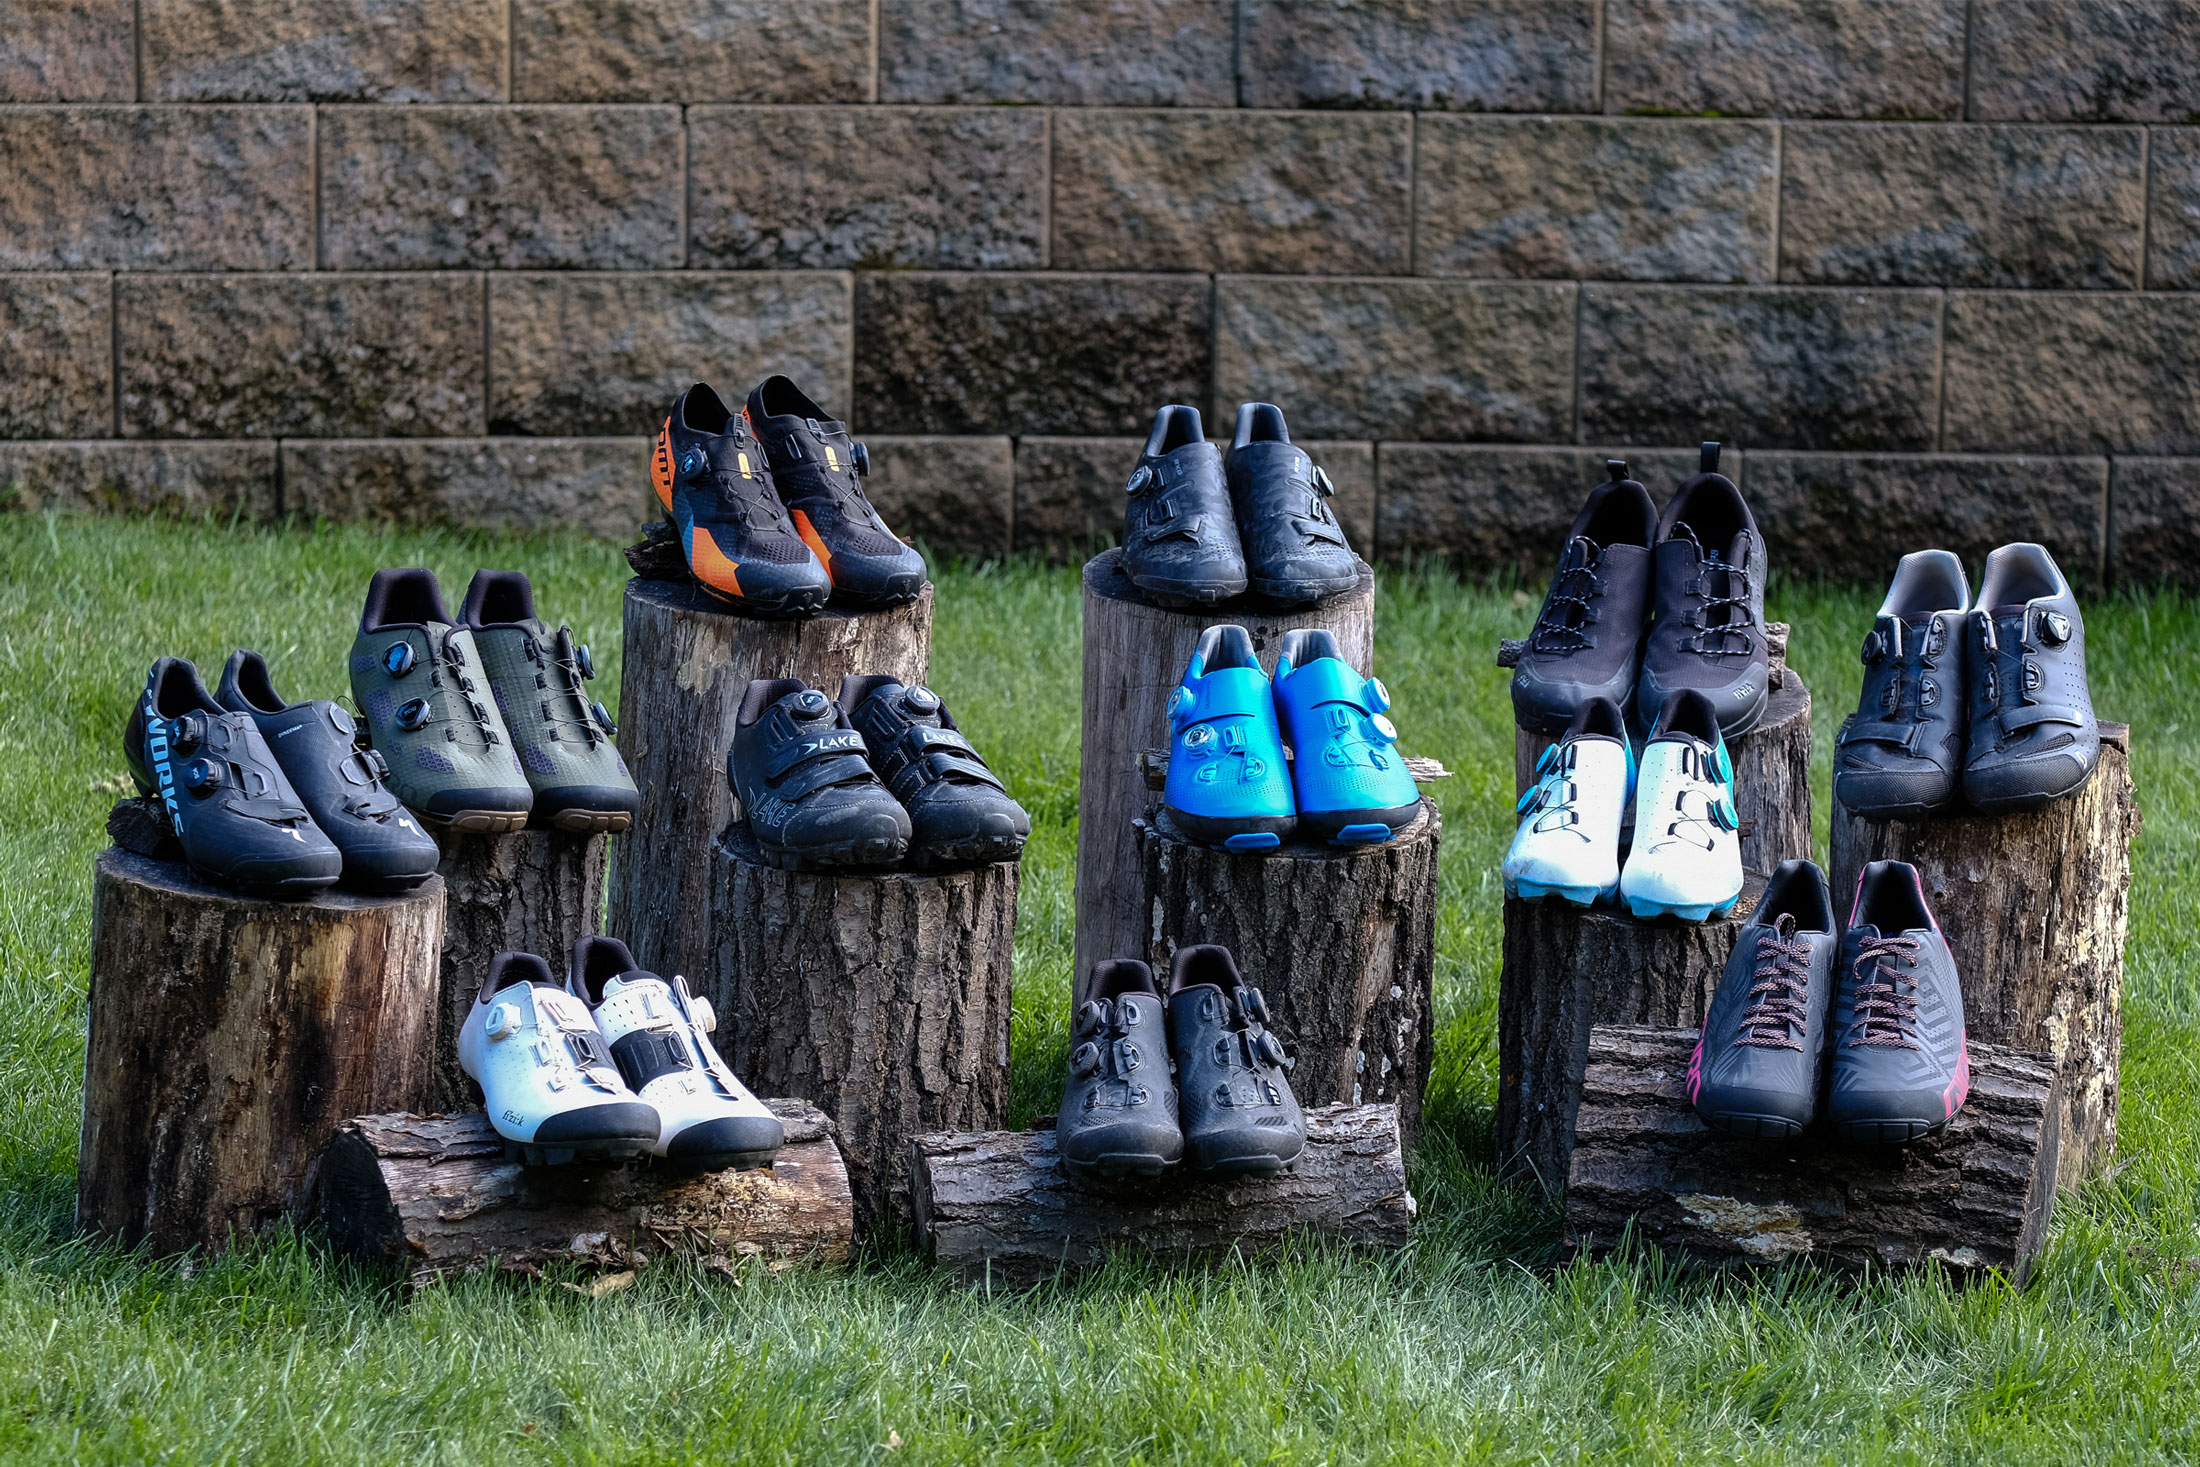 assortment of the best mountain bike shoes